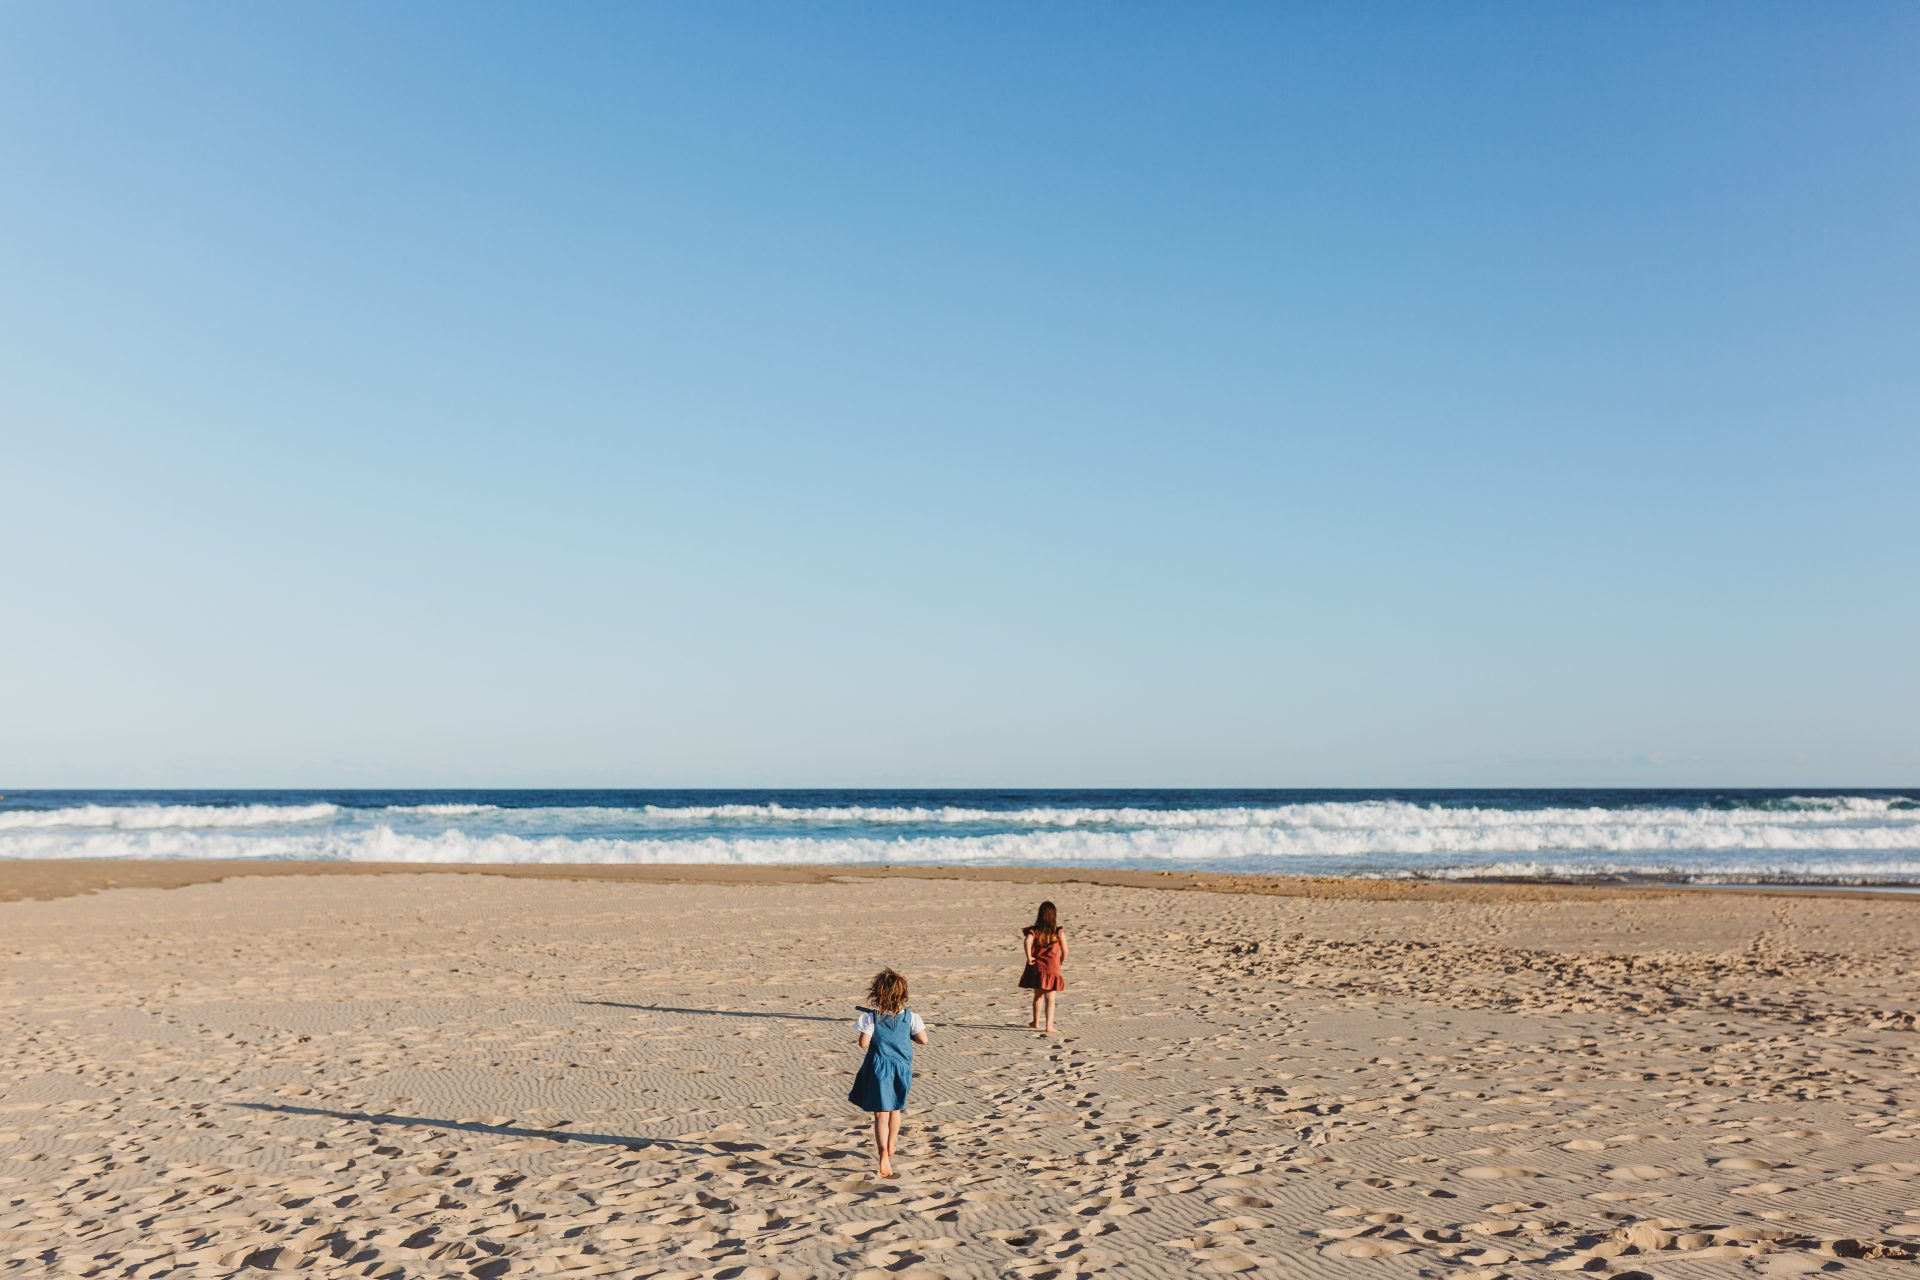 Two young sisters run towards the ocean, away from the photographer